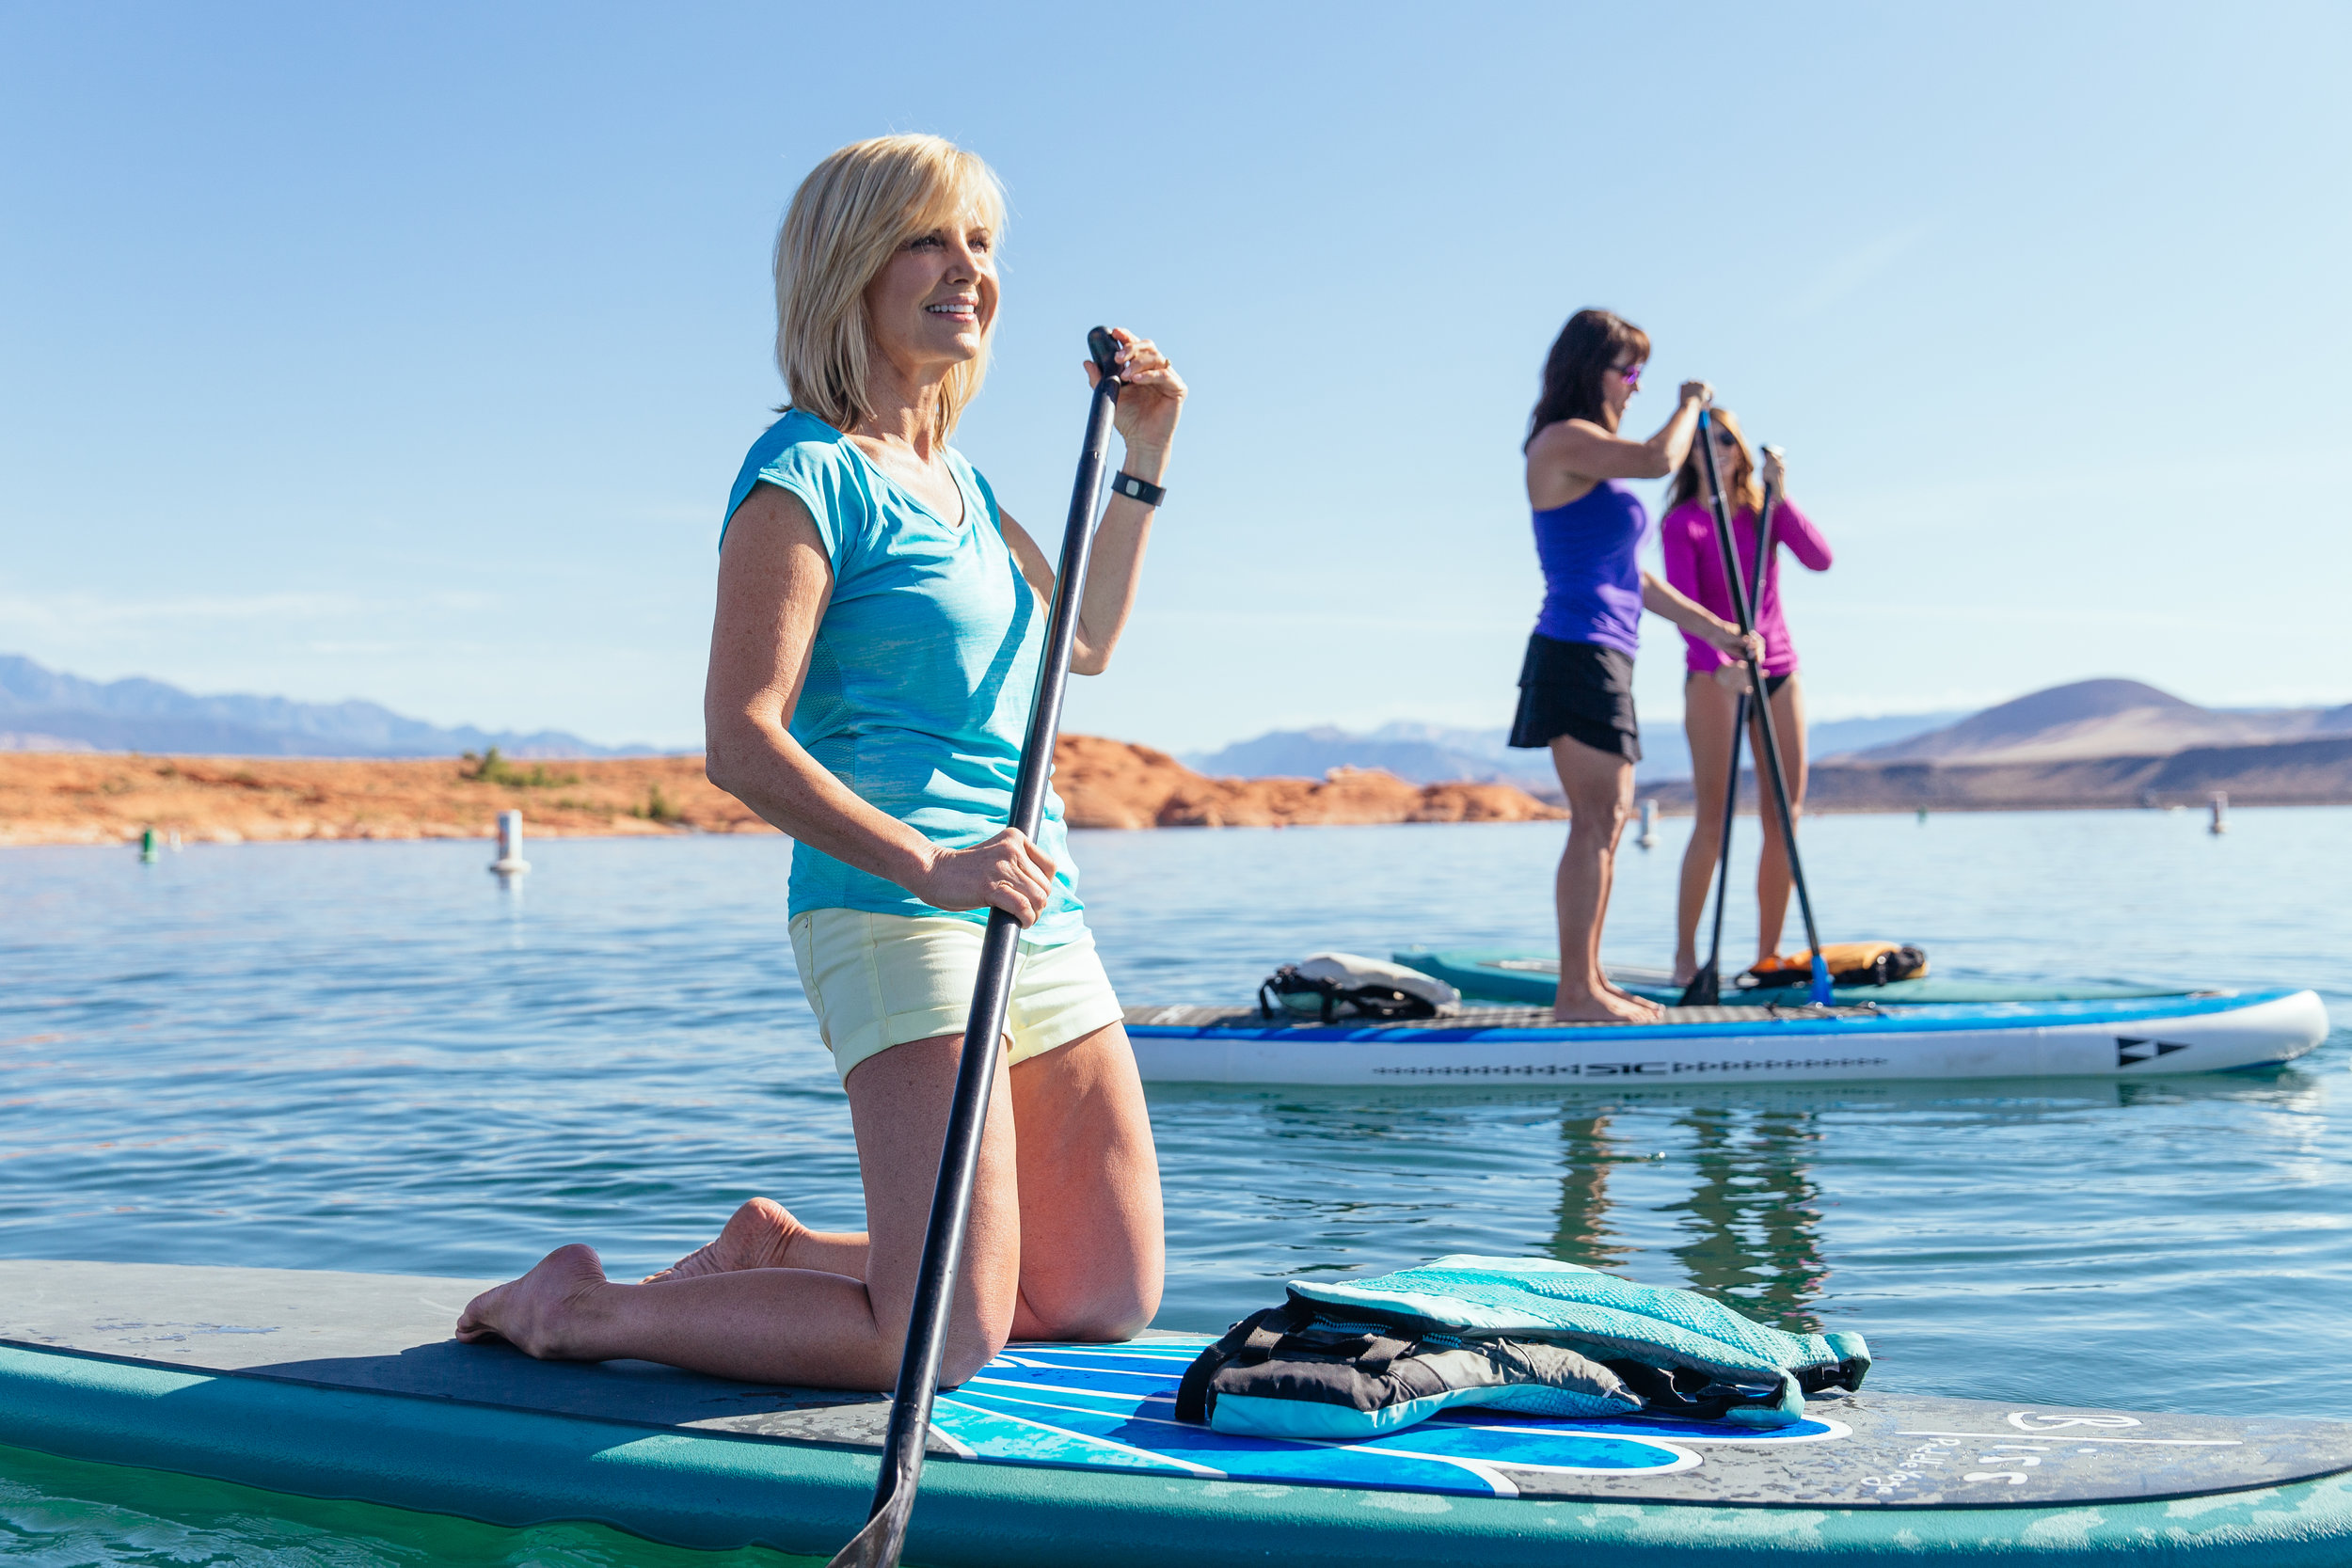 wc_SunRiver_2015_PaddleBoarding_1795.jpg